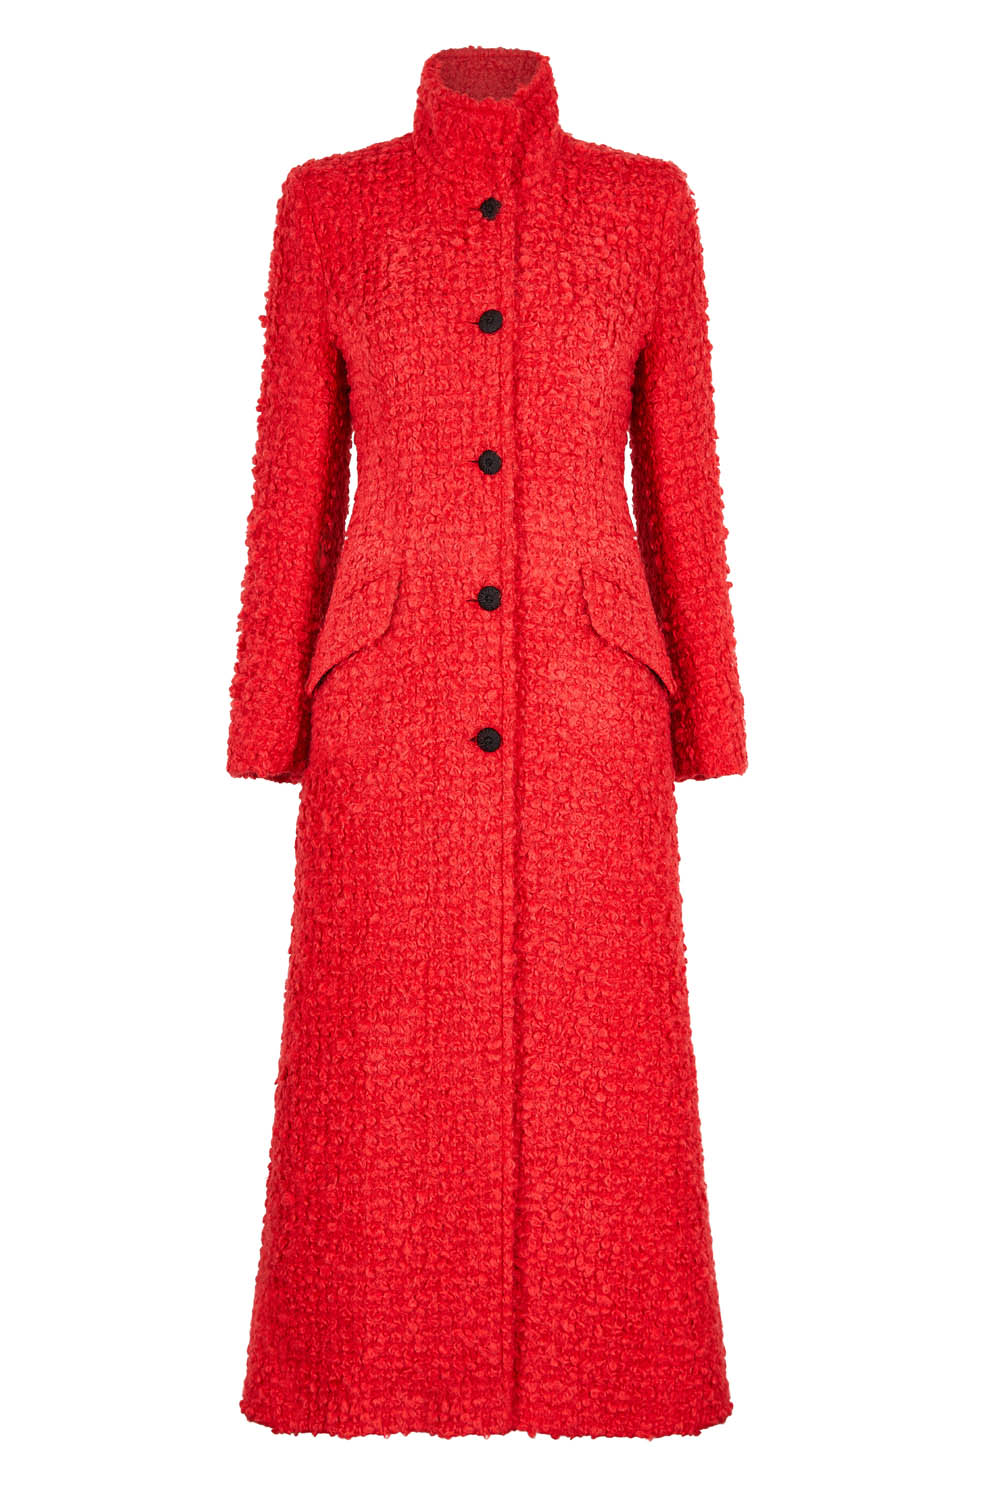 Red Maxi-Coat in Mohair/Wool - Hattie